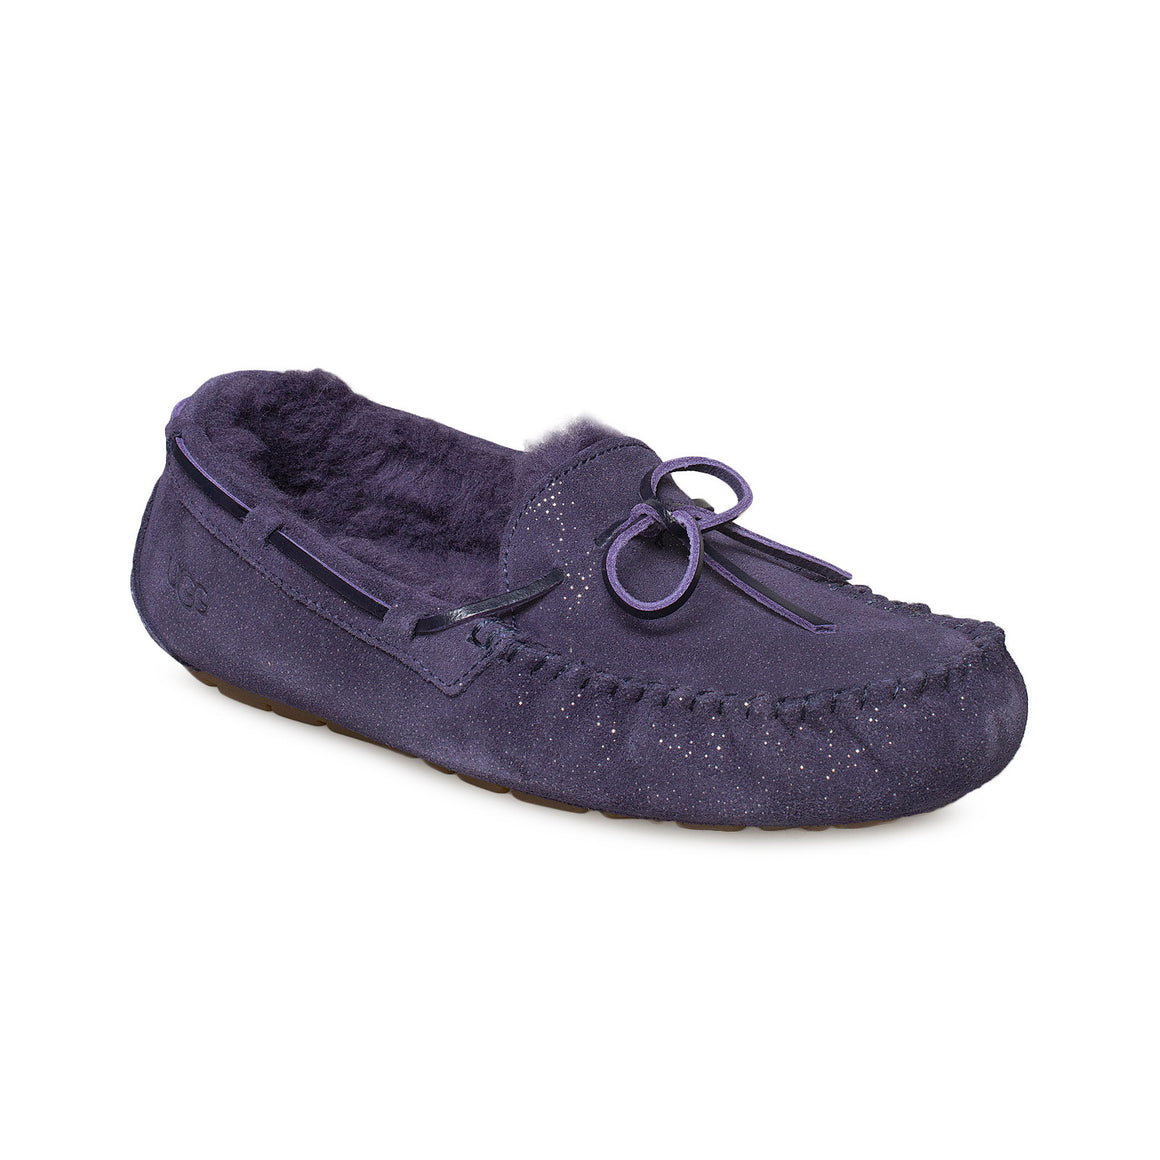 UGG Dakota Twinkle Night Shade Slippers - Women's